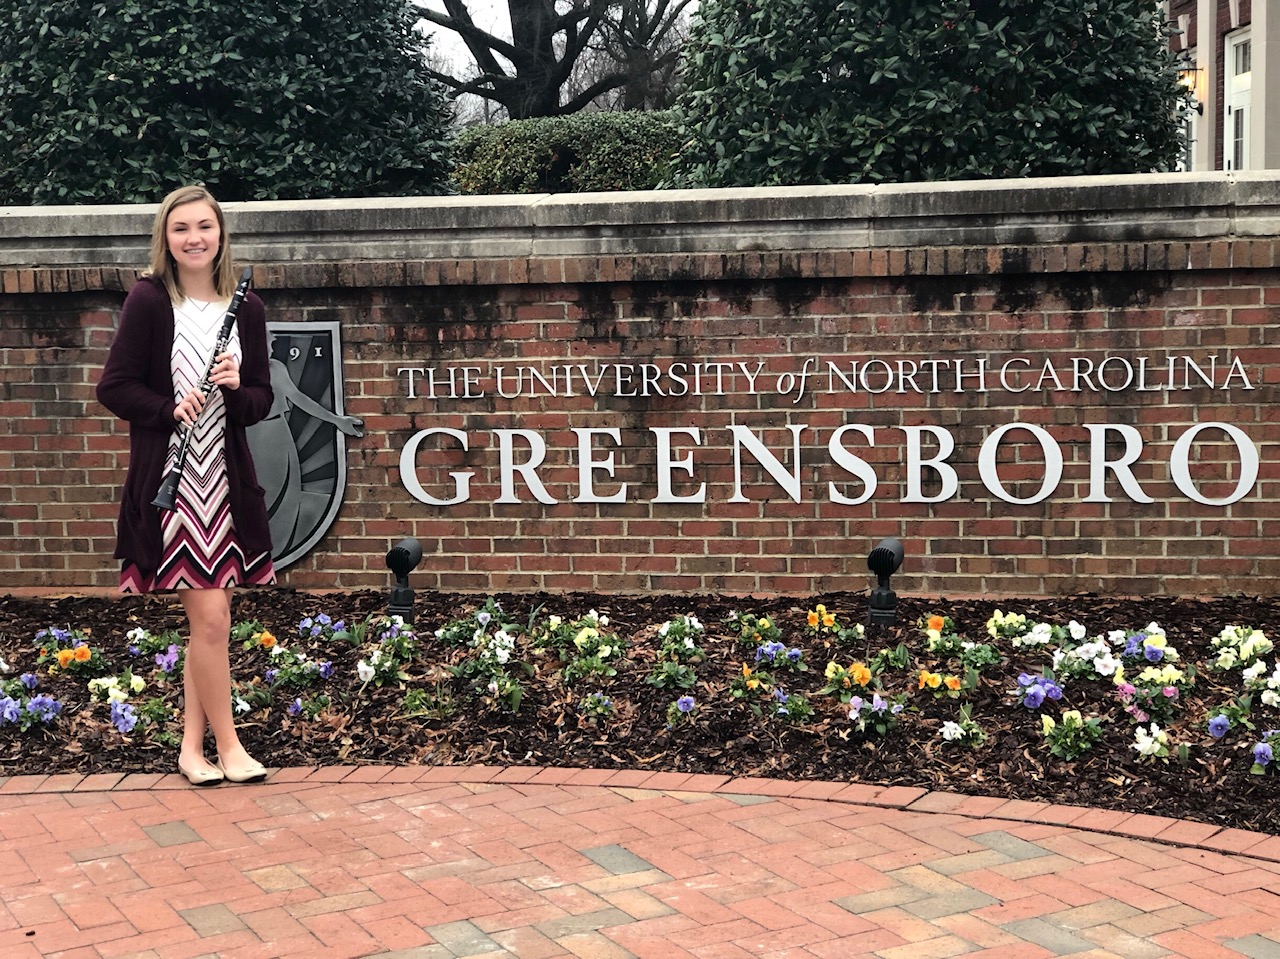 Student holding musical instrument in front of the UNC-Greensboro sign.